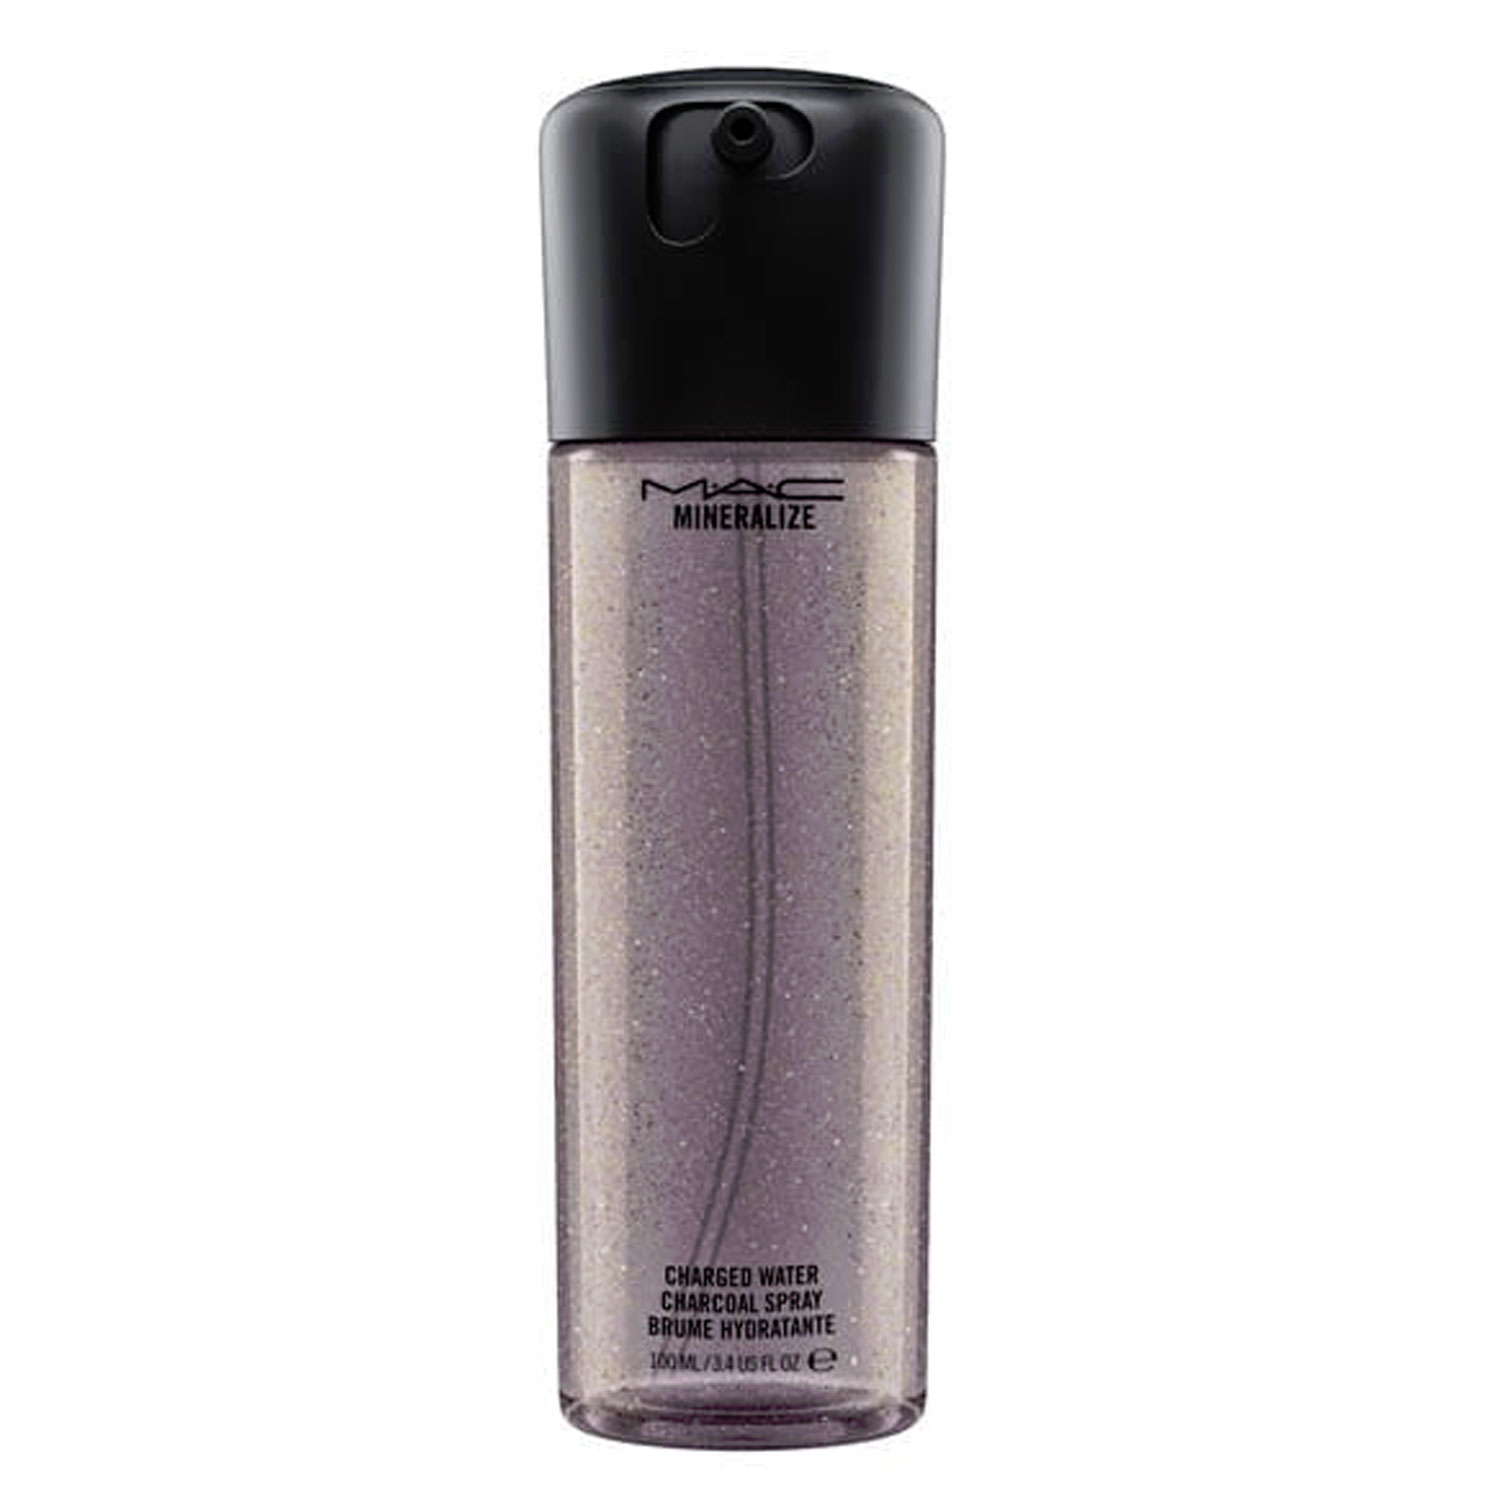 M·A·C Skin Care - Mineralize Charged Water Charcoal Spray